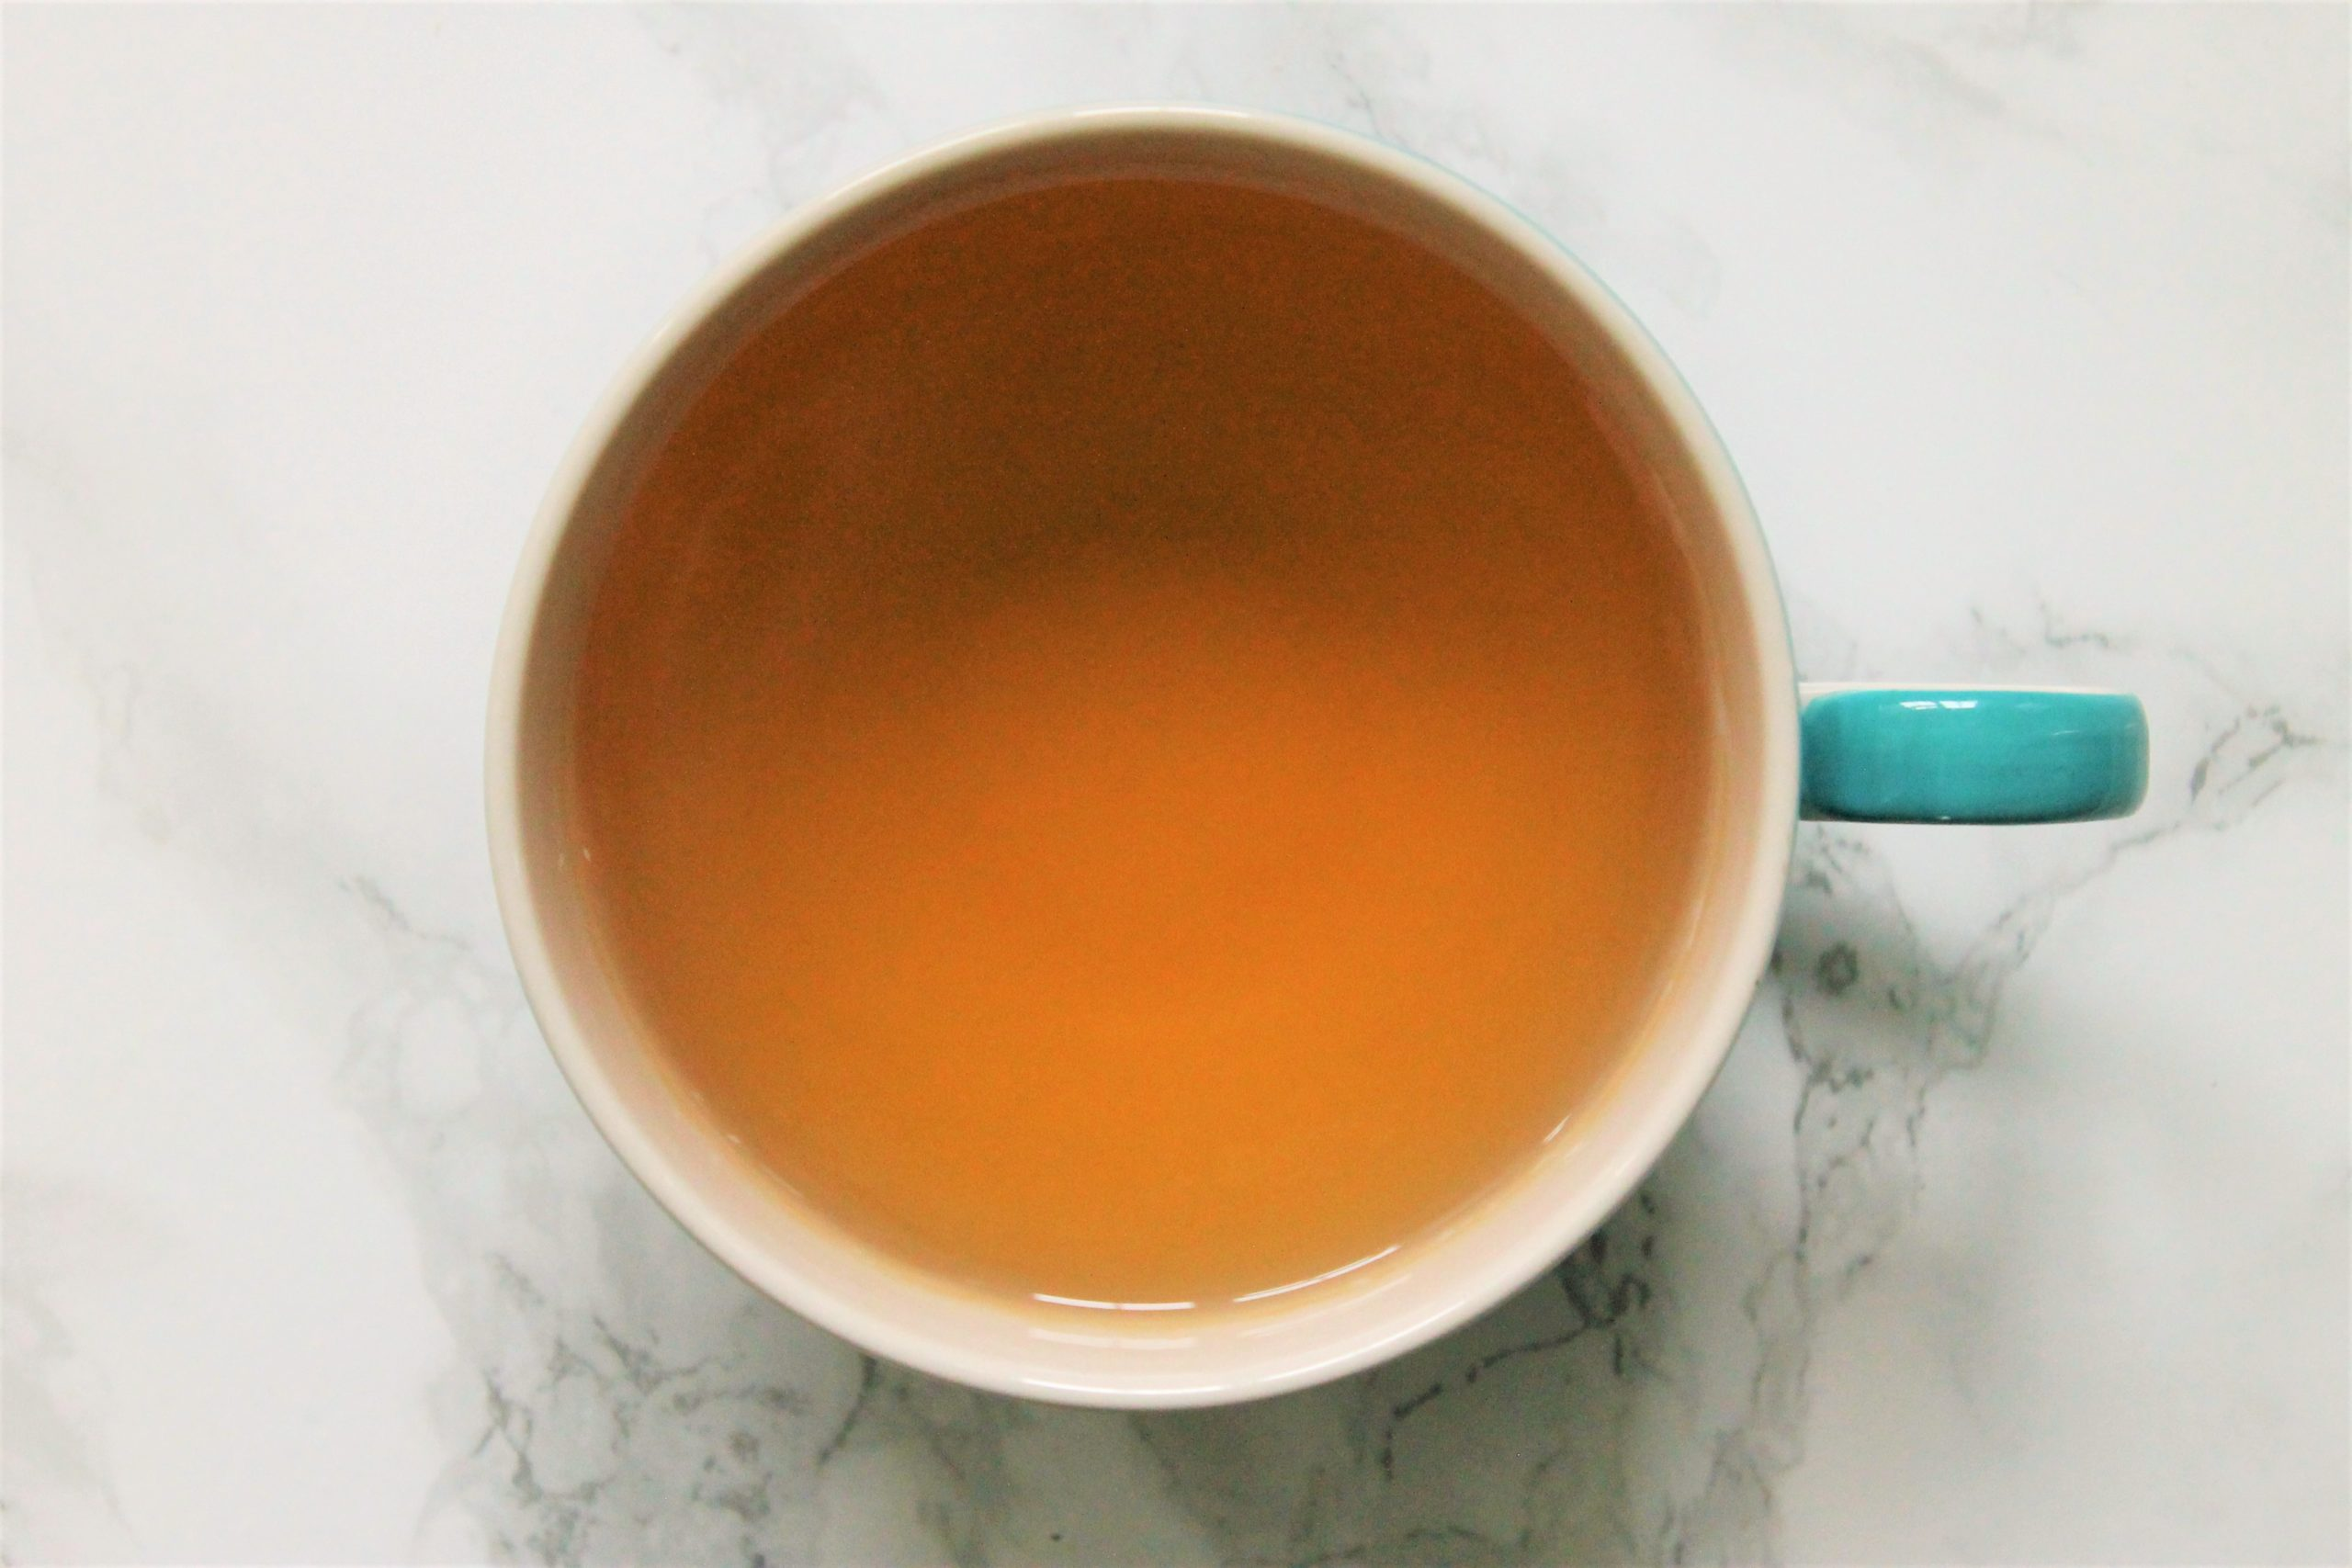 orange tea in teacup